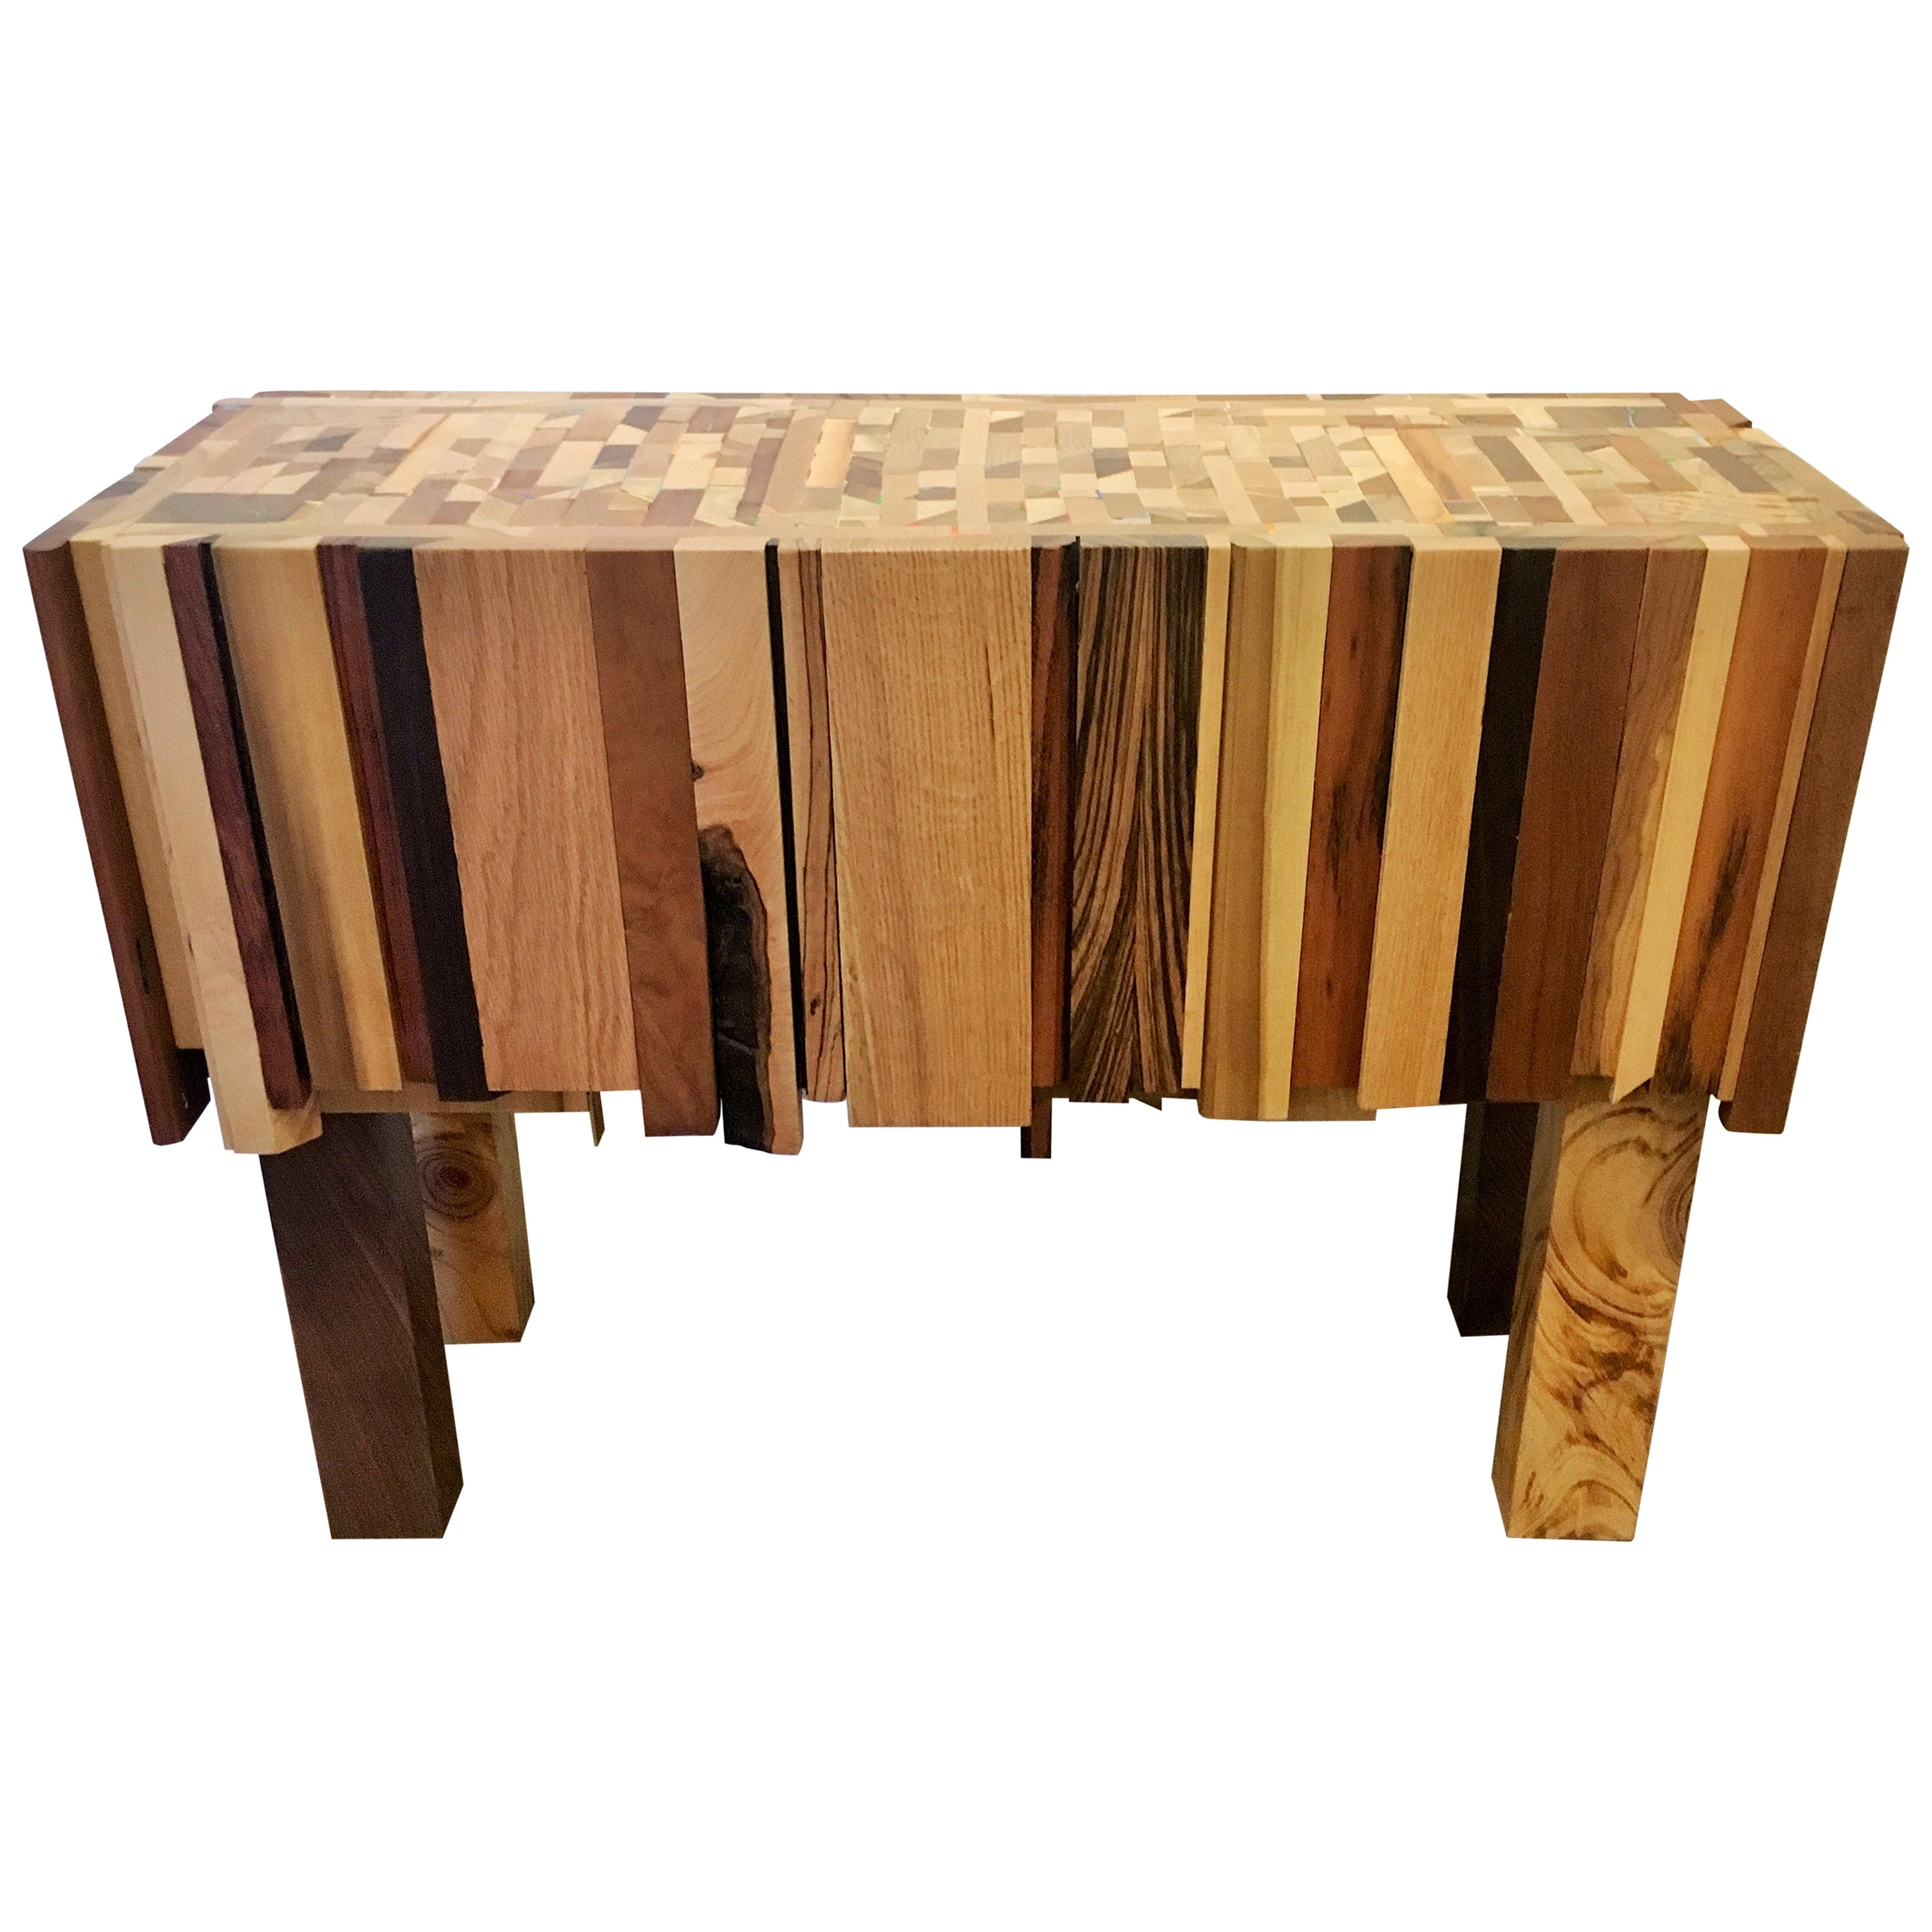 Mixed wood and acrylic paint table by artist ben darby for sale at 1stdibs